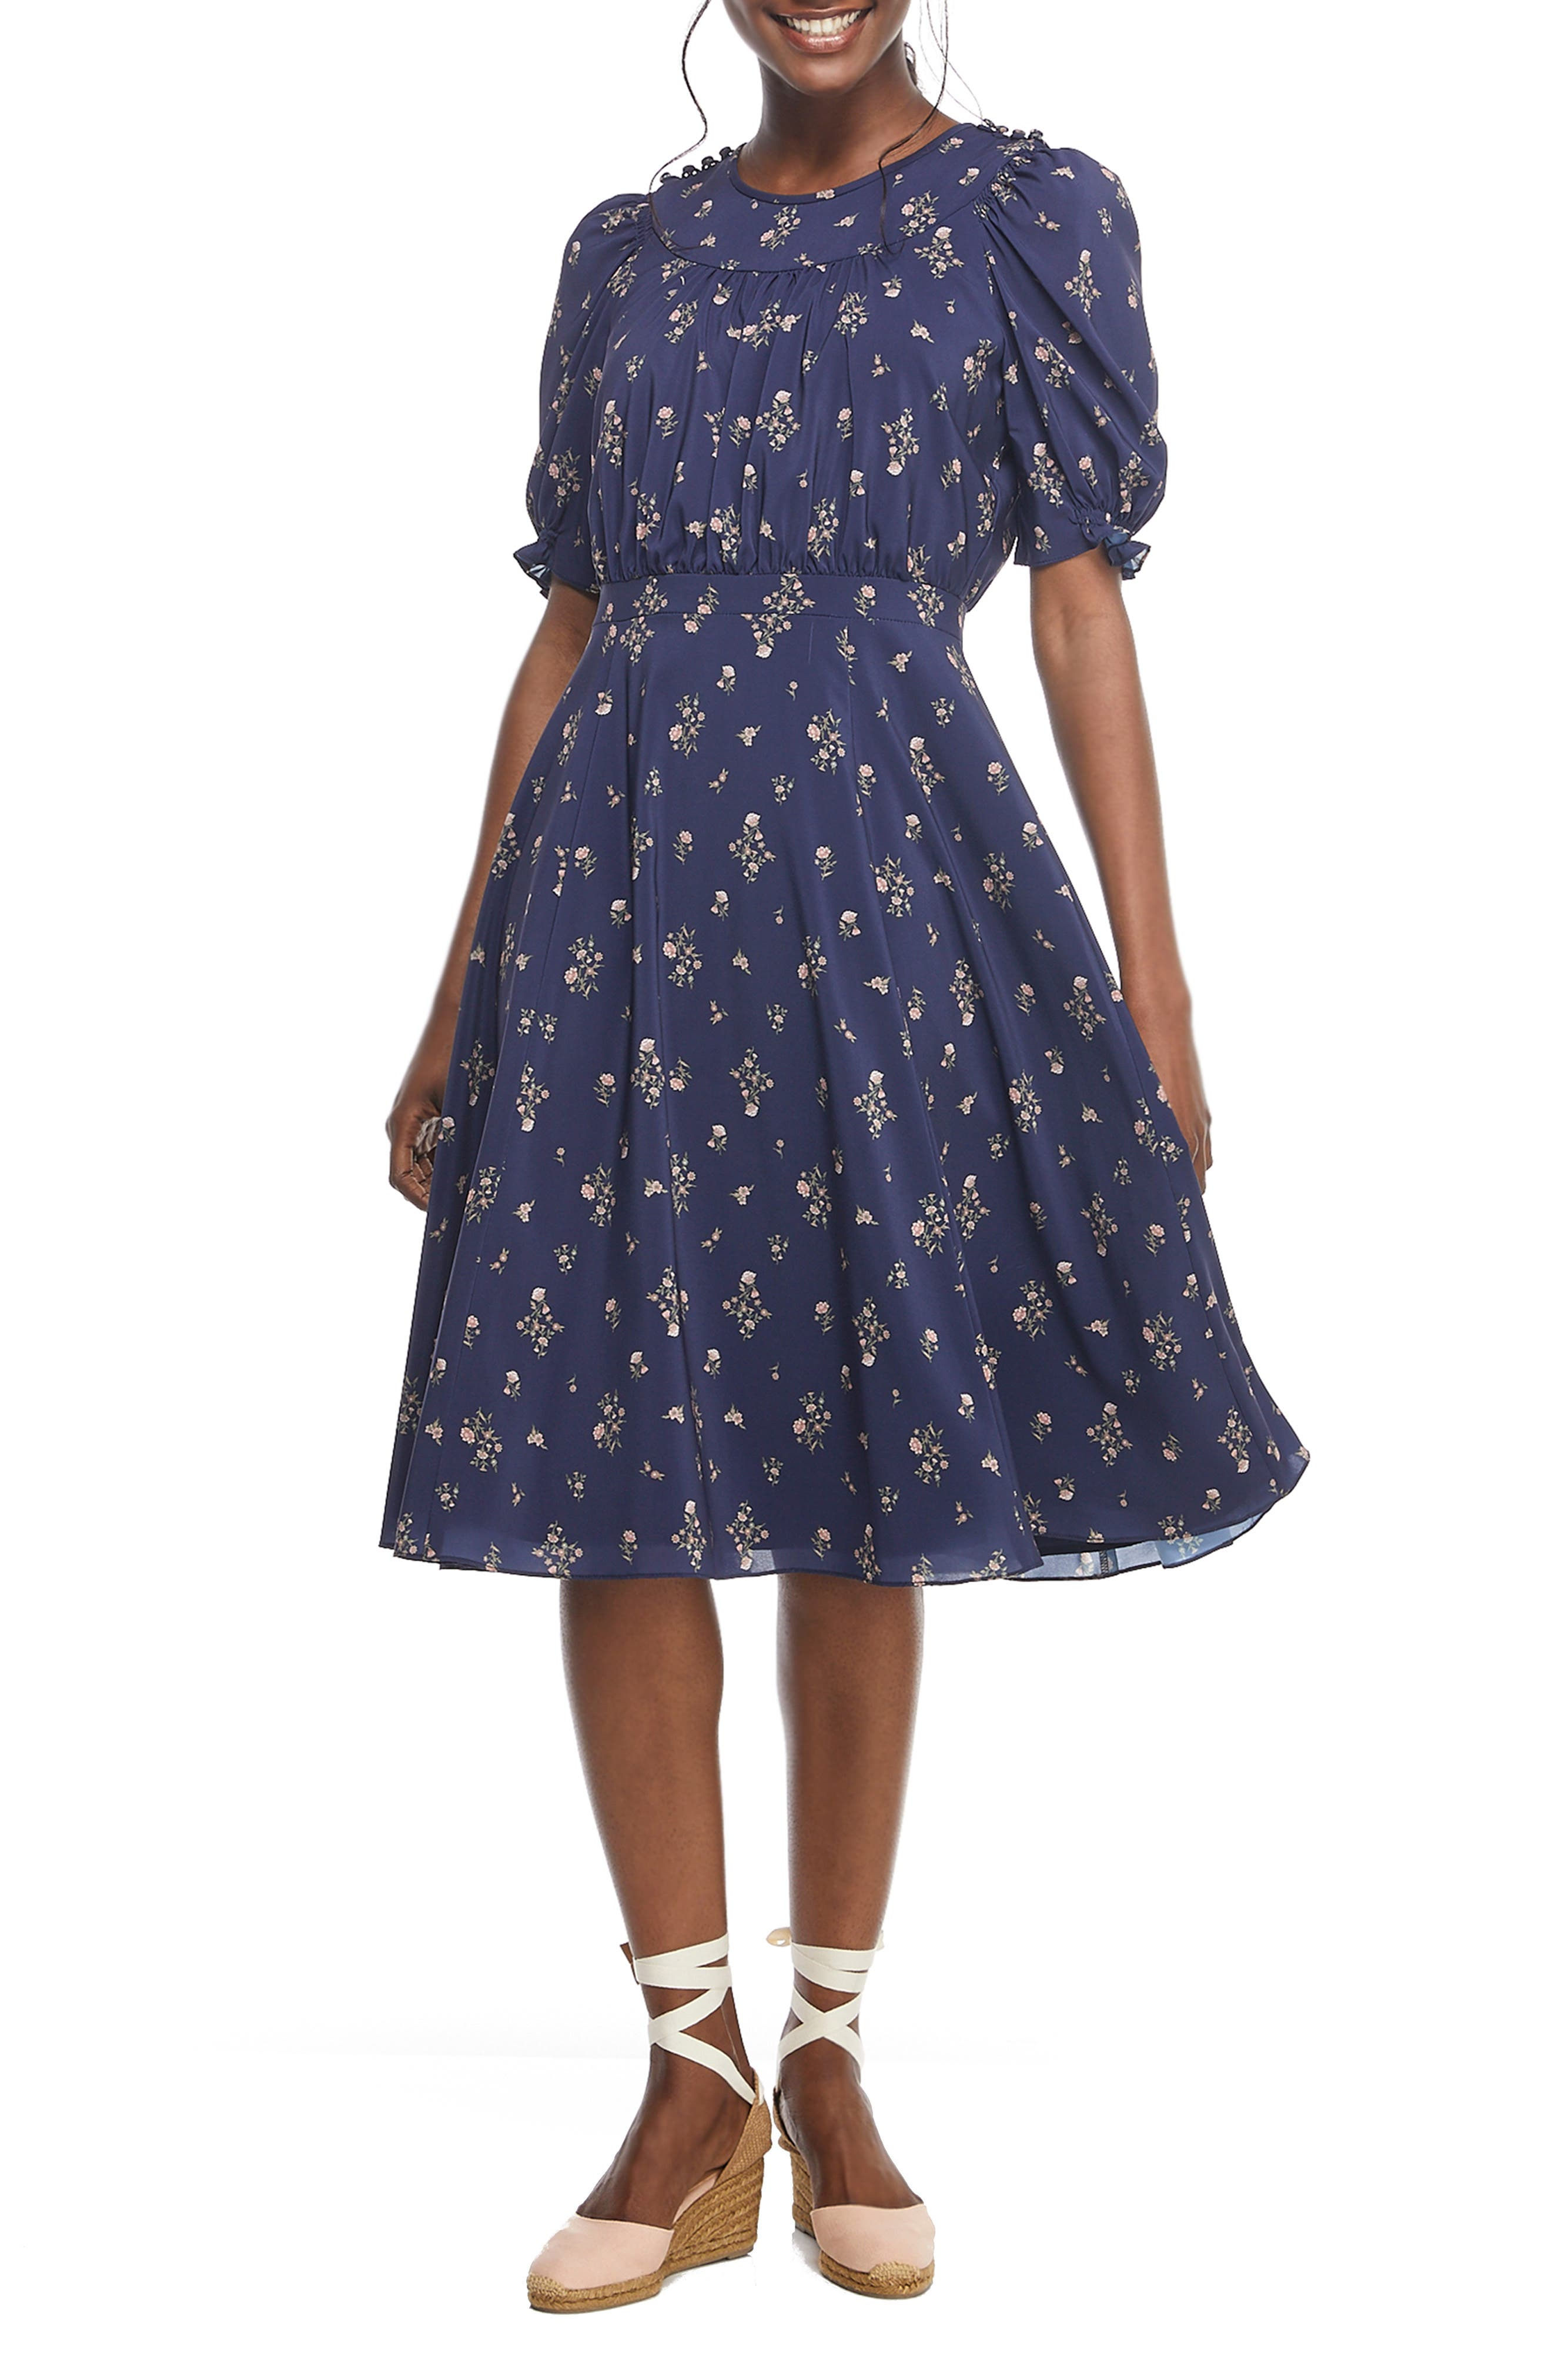 1930s Dresses | 30s Art Deco Dress Womens Gal Meets Glam Collection Emily Fit  Flare Dress $118.80 AT vintagedancer.com